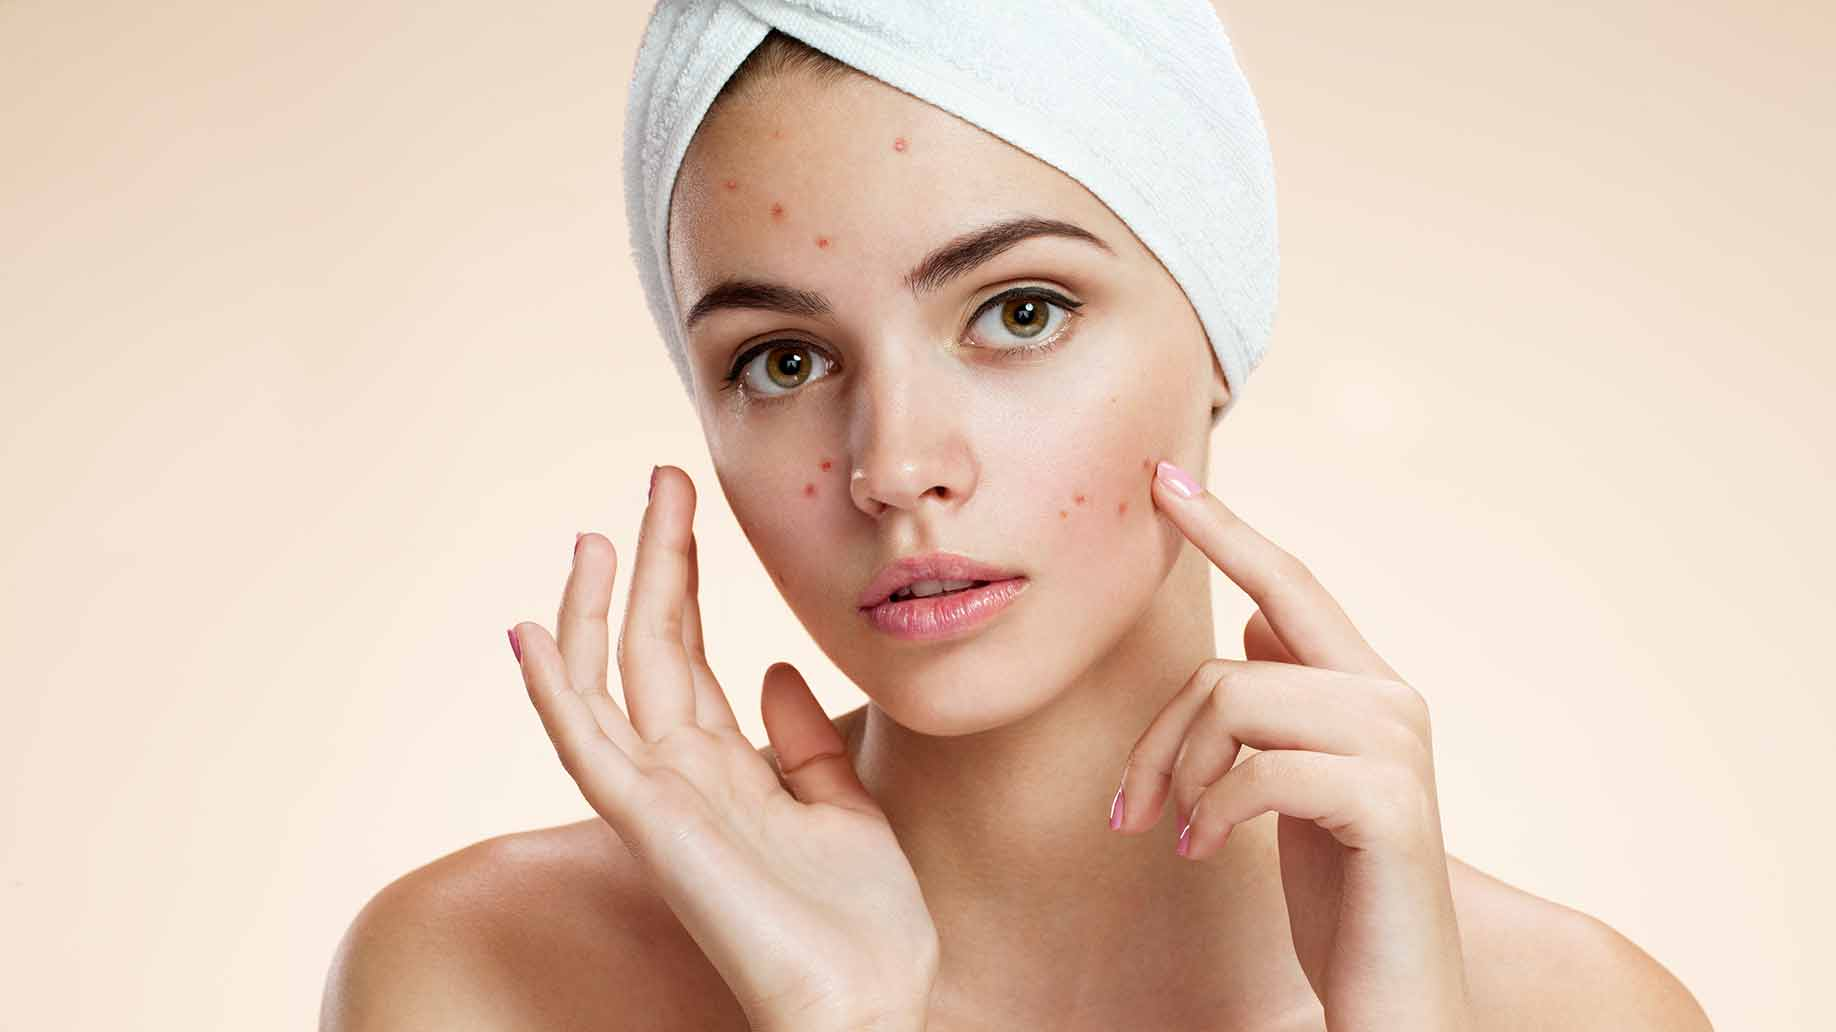 Acne – The Fact Sheet